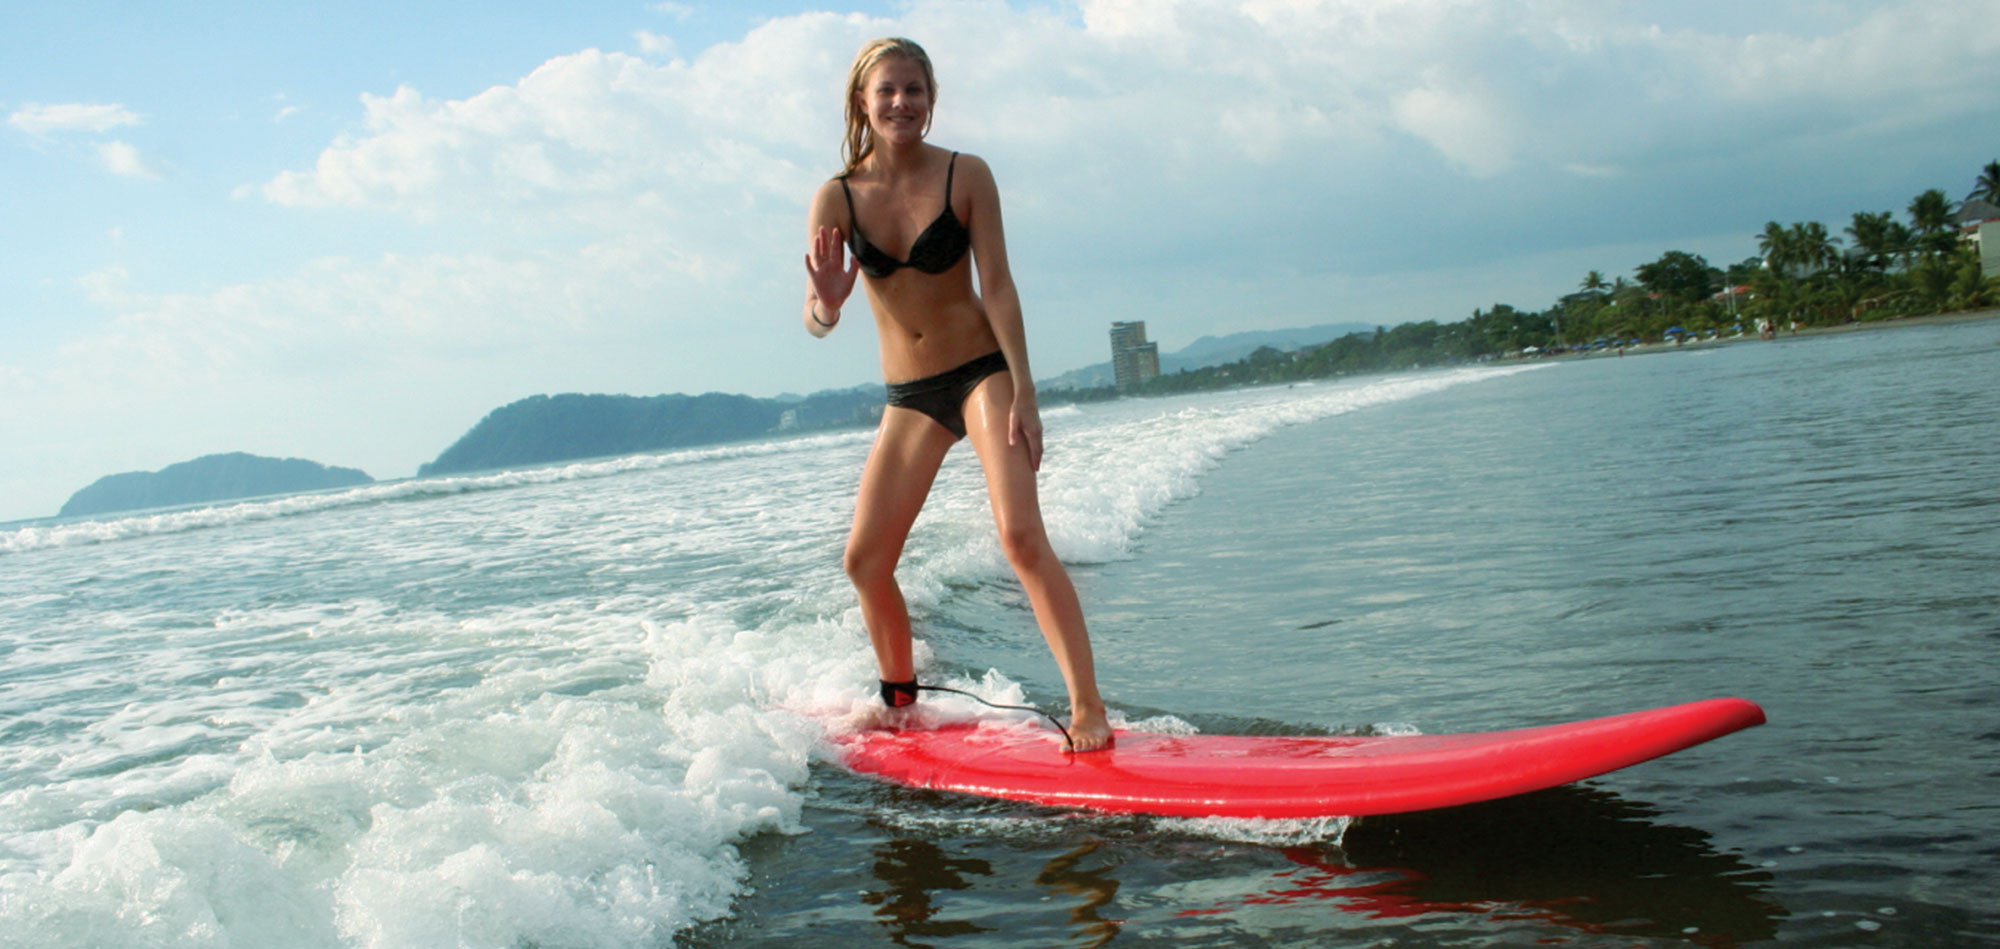 Learn to surf at The Pura Vida Land!